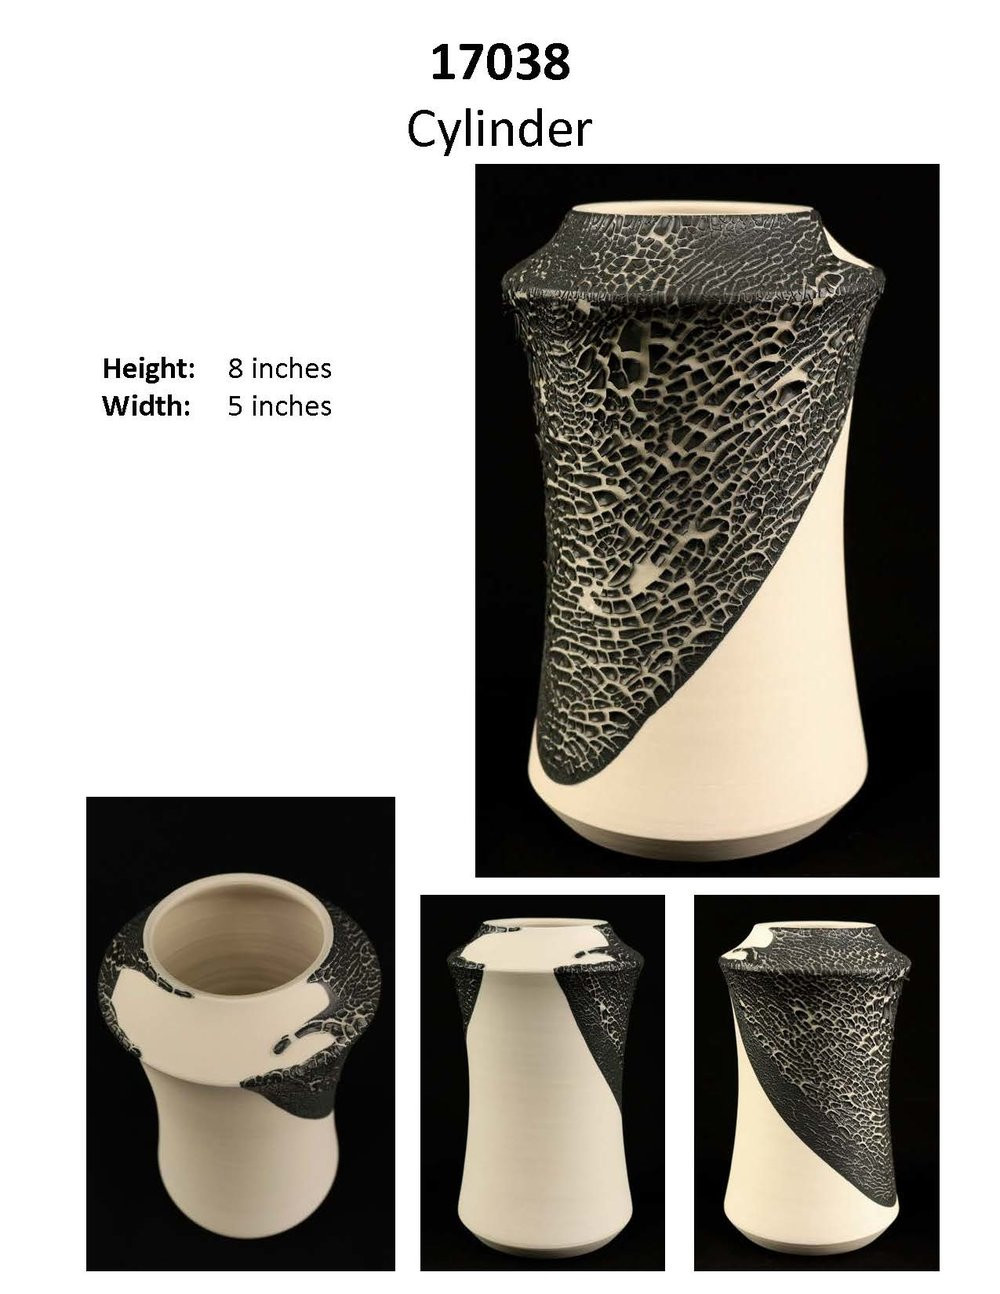 matte white ceramic vase of crawl on white matte 2018 09 09 crawford ceramic designs throughout crawl on white matte page 03